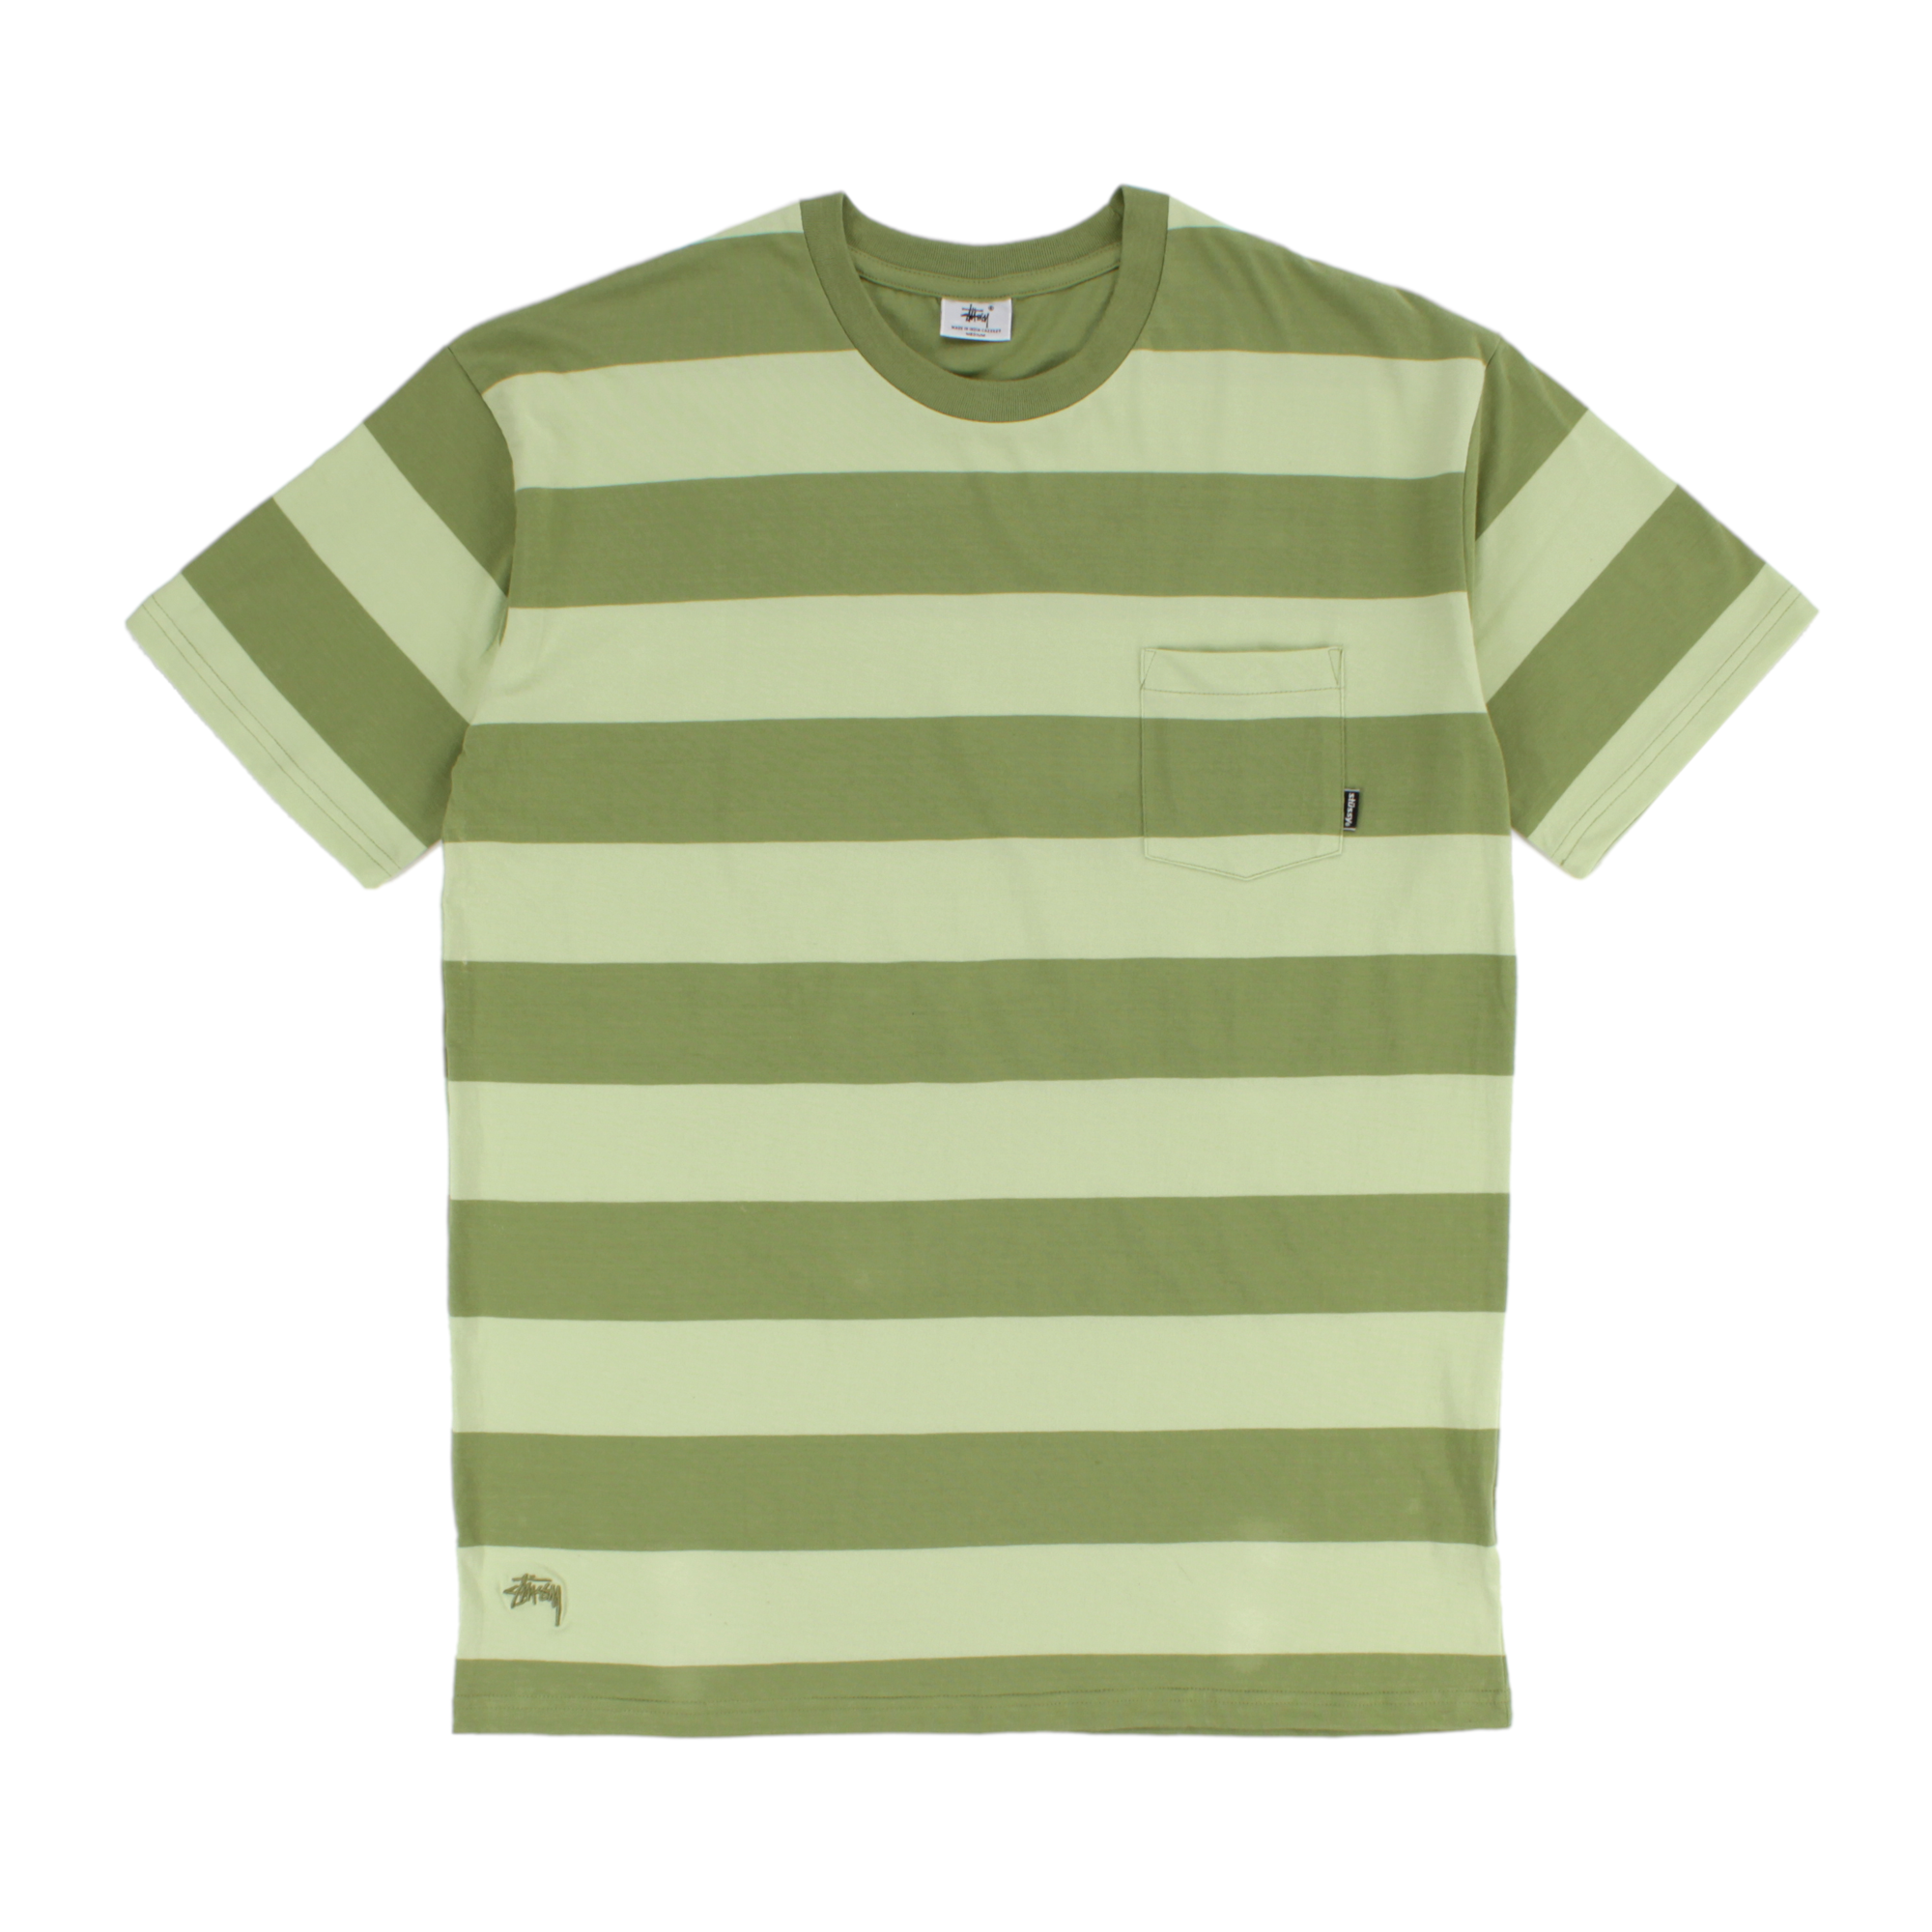 Stussy Fat Stripe Tee Product Photo #1